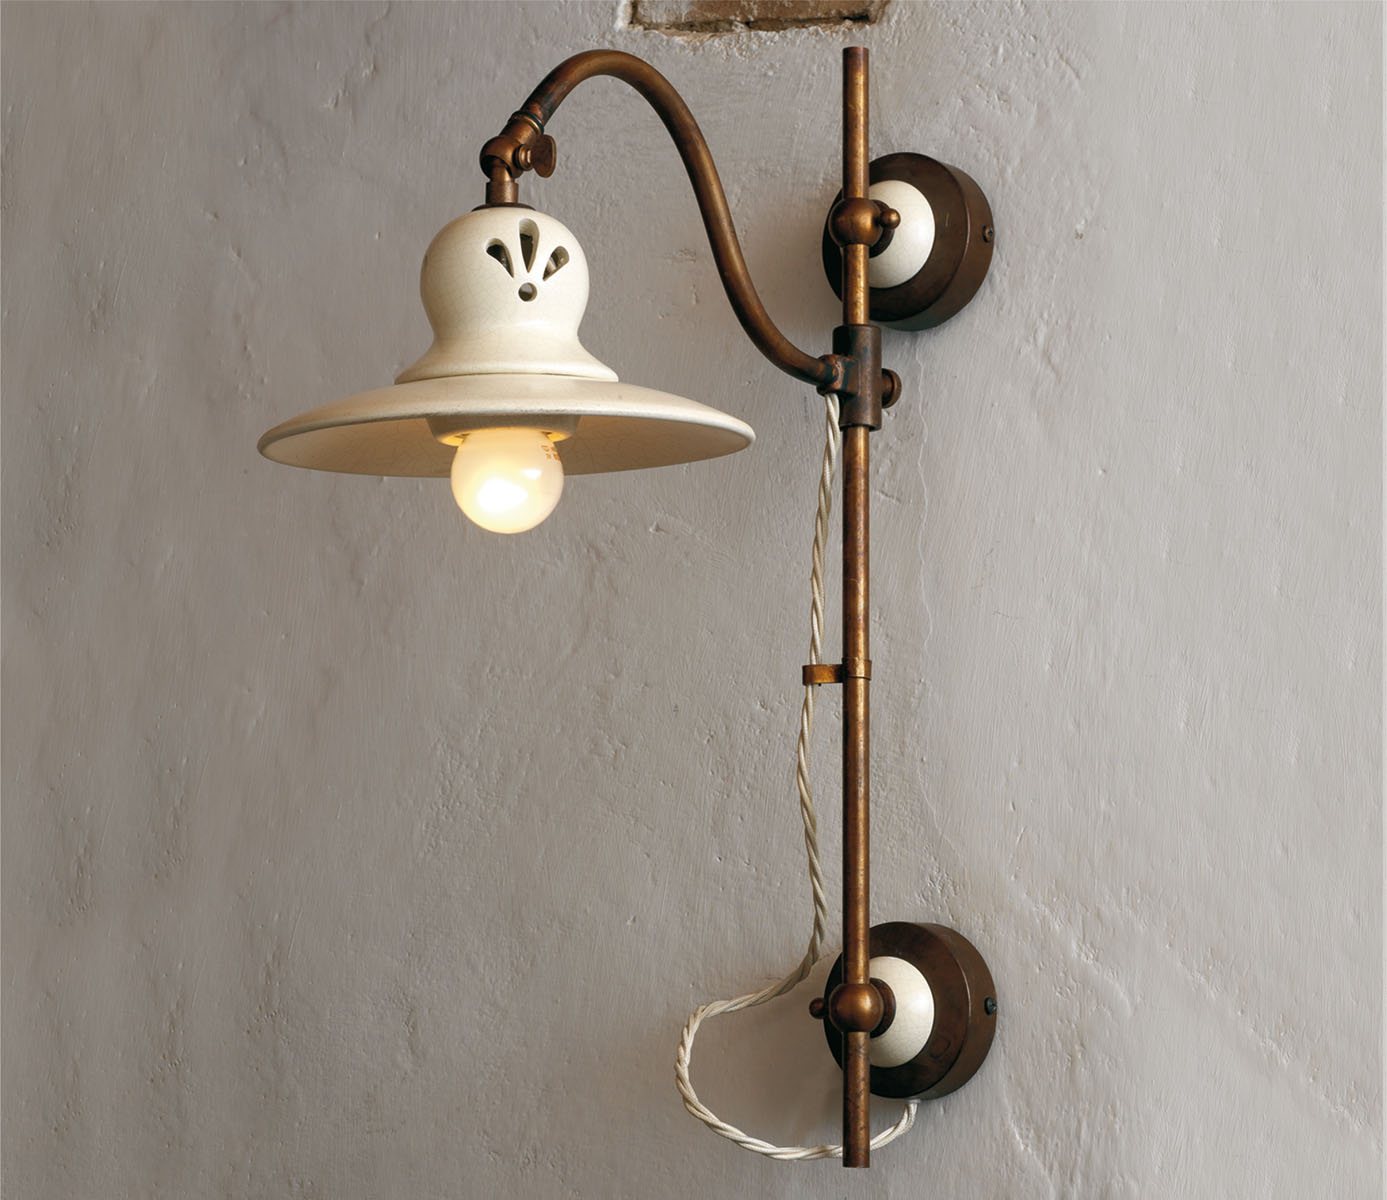 30/A30/TR Ceramic and Brass Adjustable Sconce with Open-worked